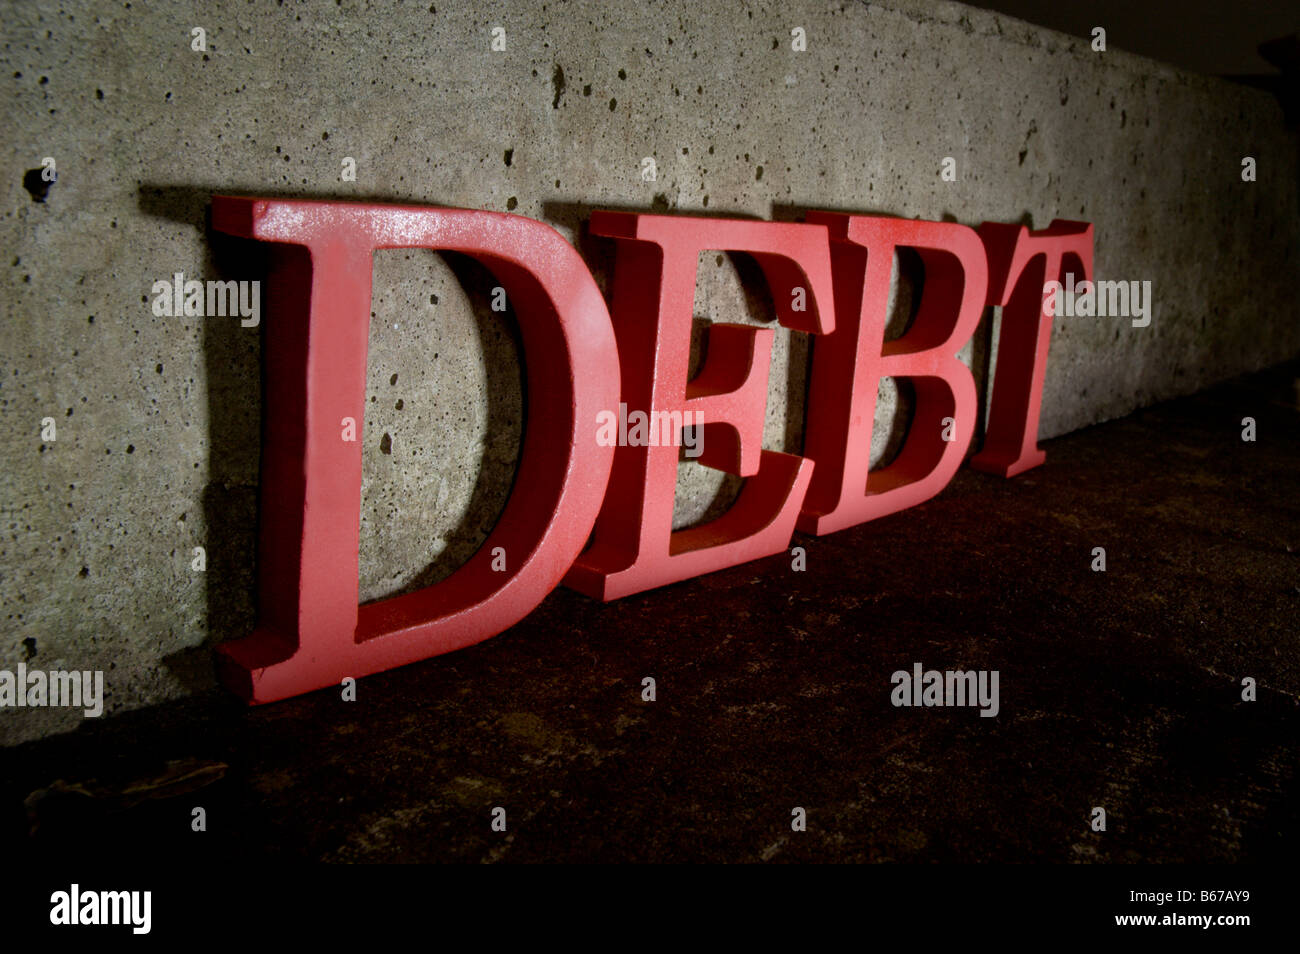 The word debt in red against cold concrete - Stock Image